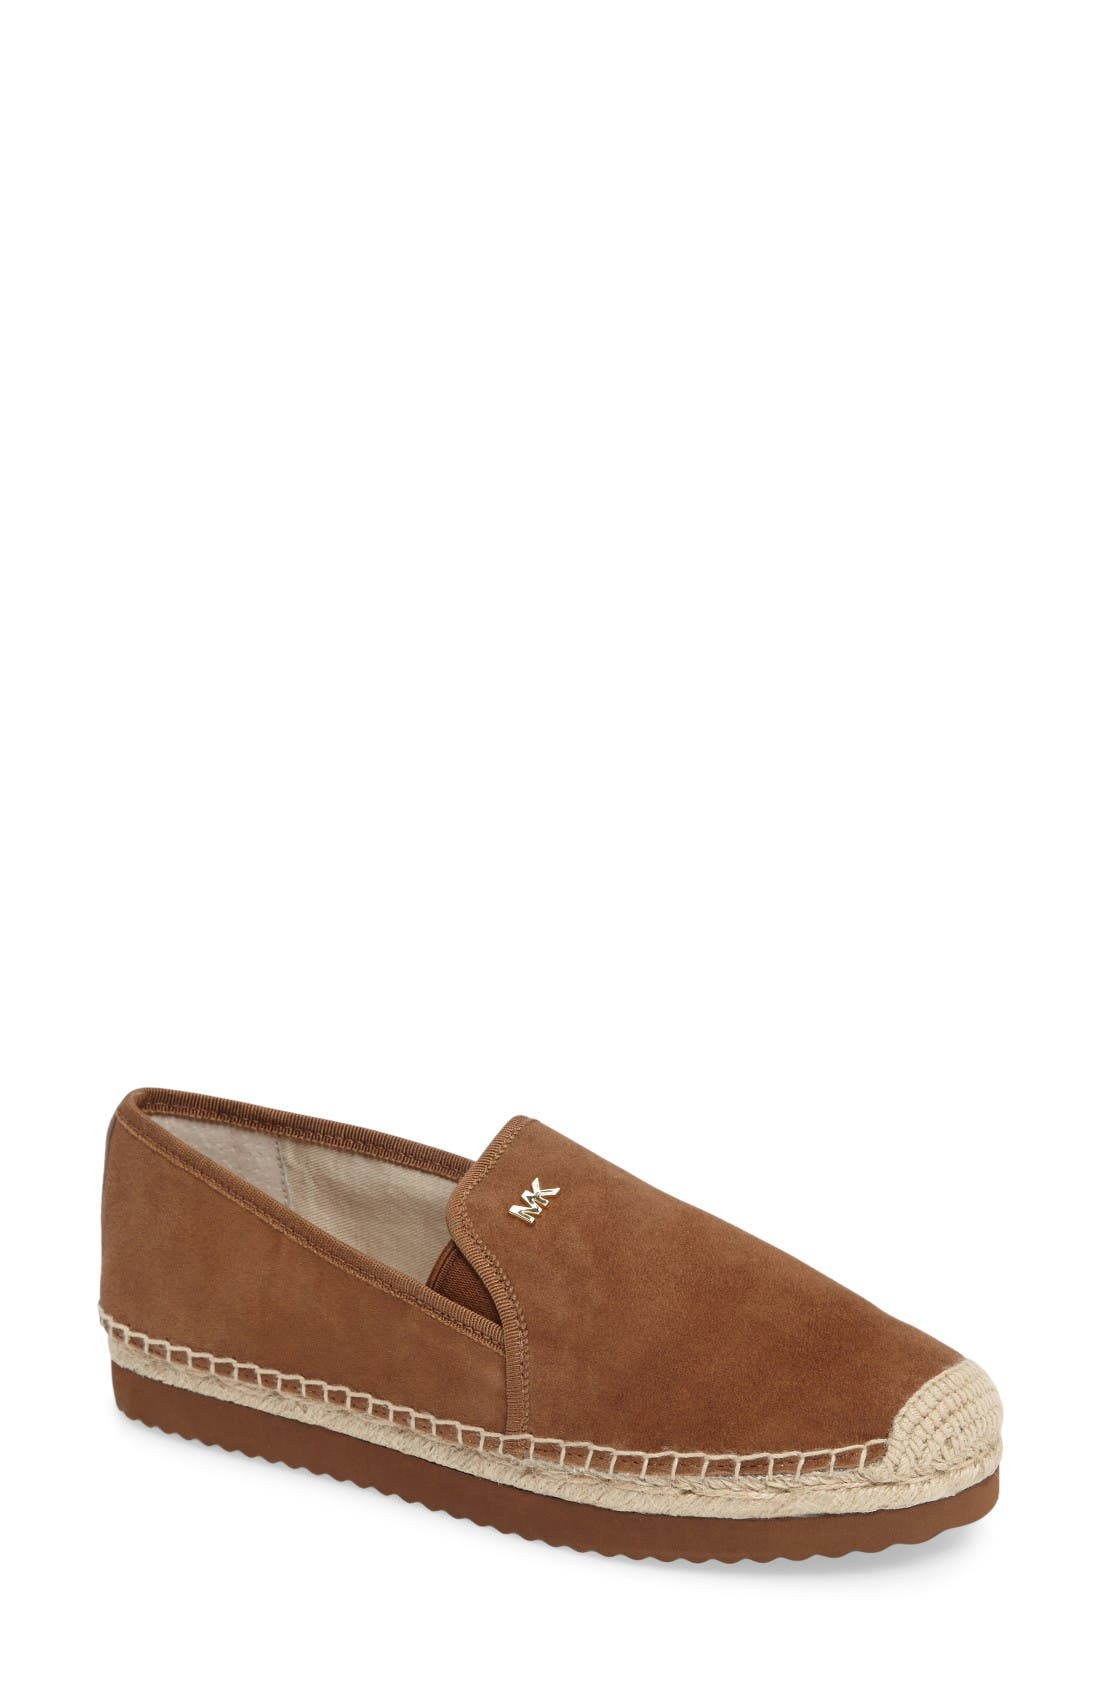 Hastings Espadrille Slip-On,                             Main thumbnail 1, color,                             Dark Caramel Suede